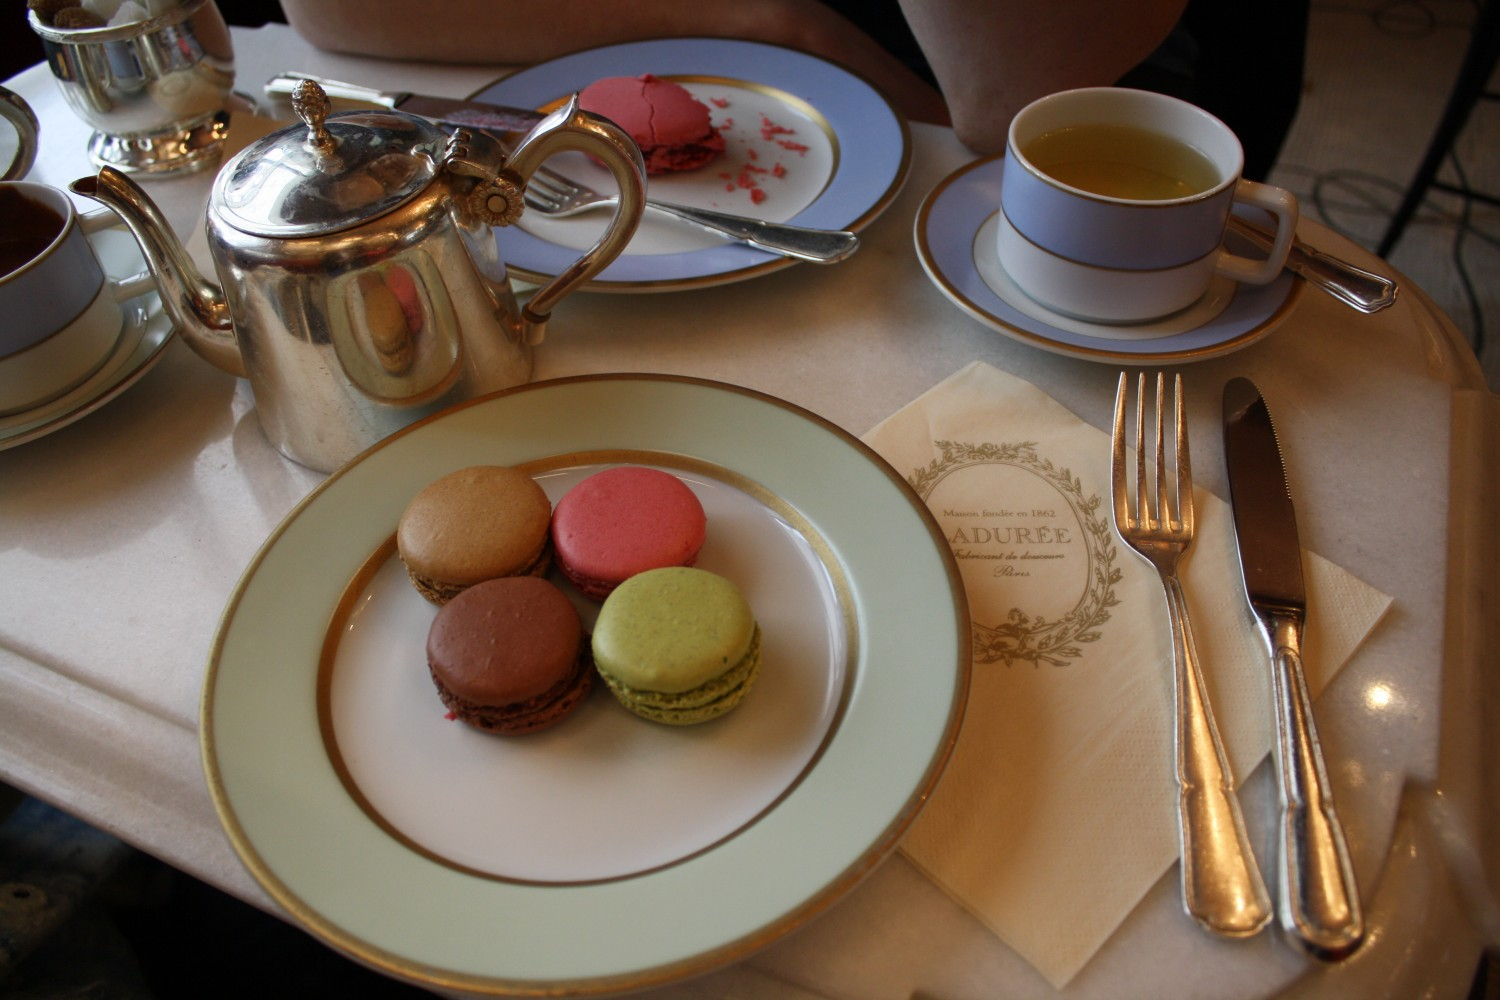 Laduree Paris Macarons tea